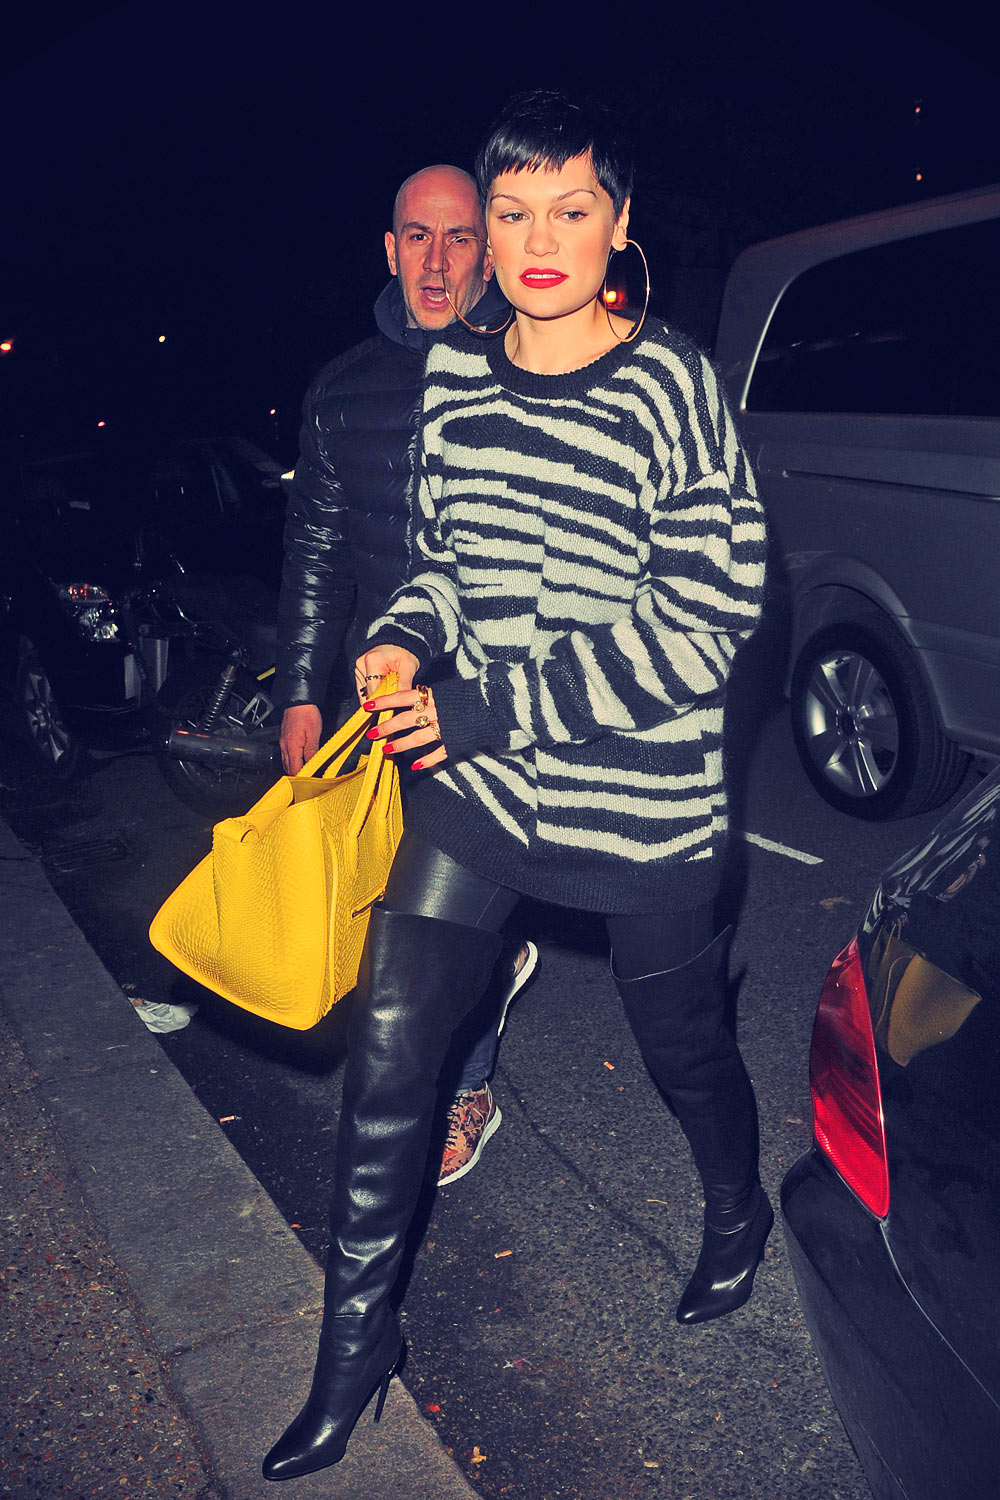 Jessie J At Studio to Film Top of the Pops Christmas Day Show